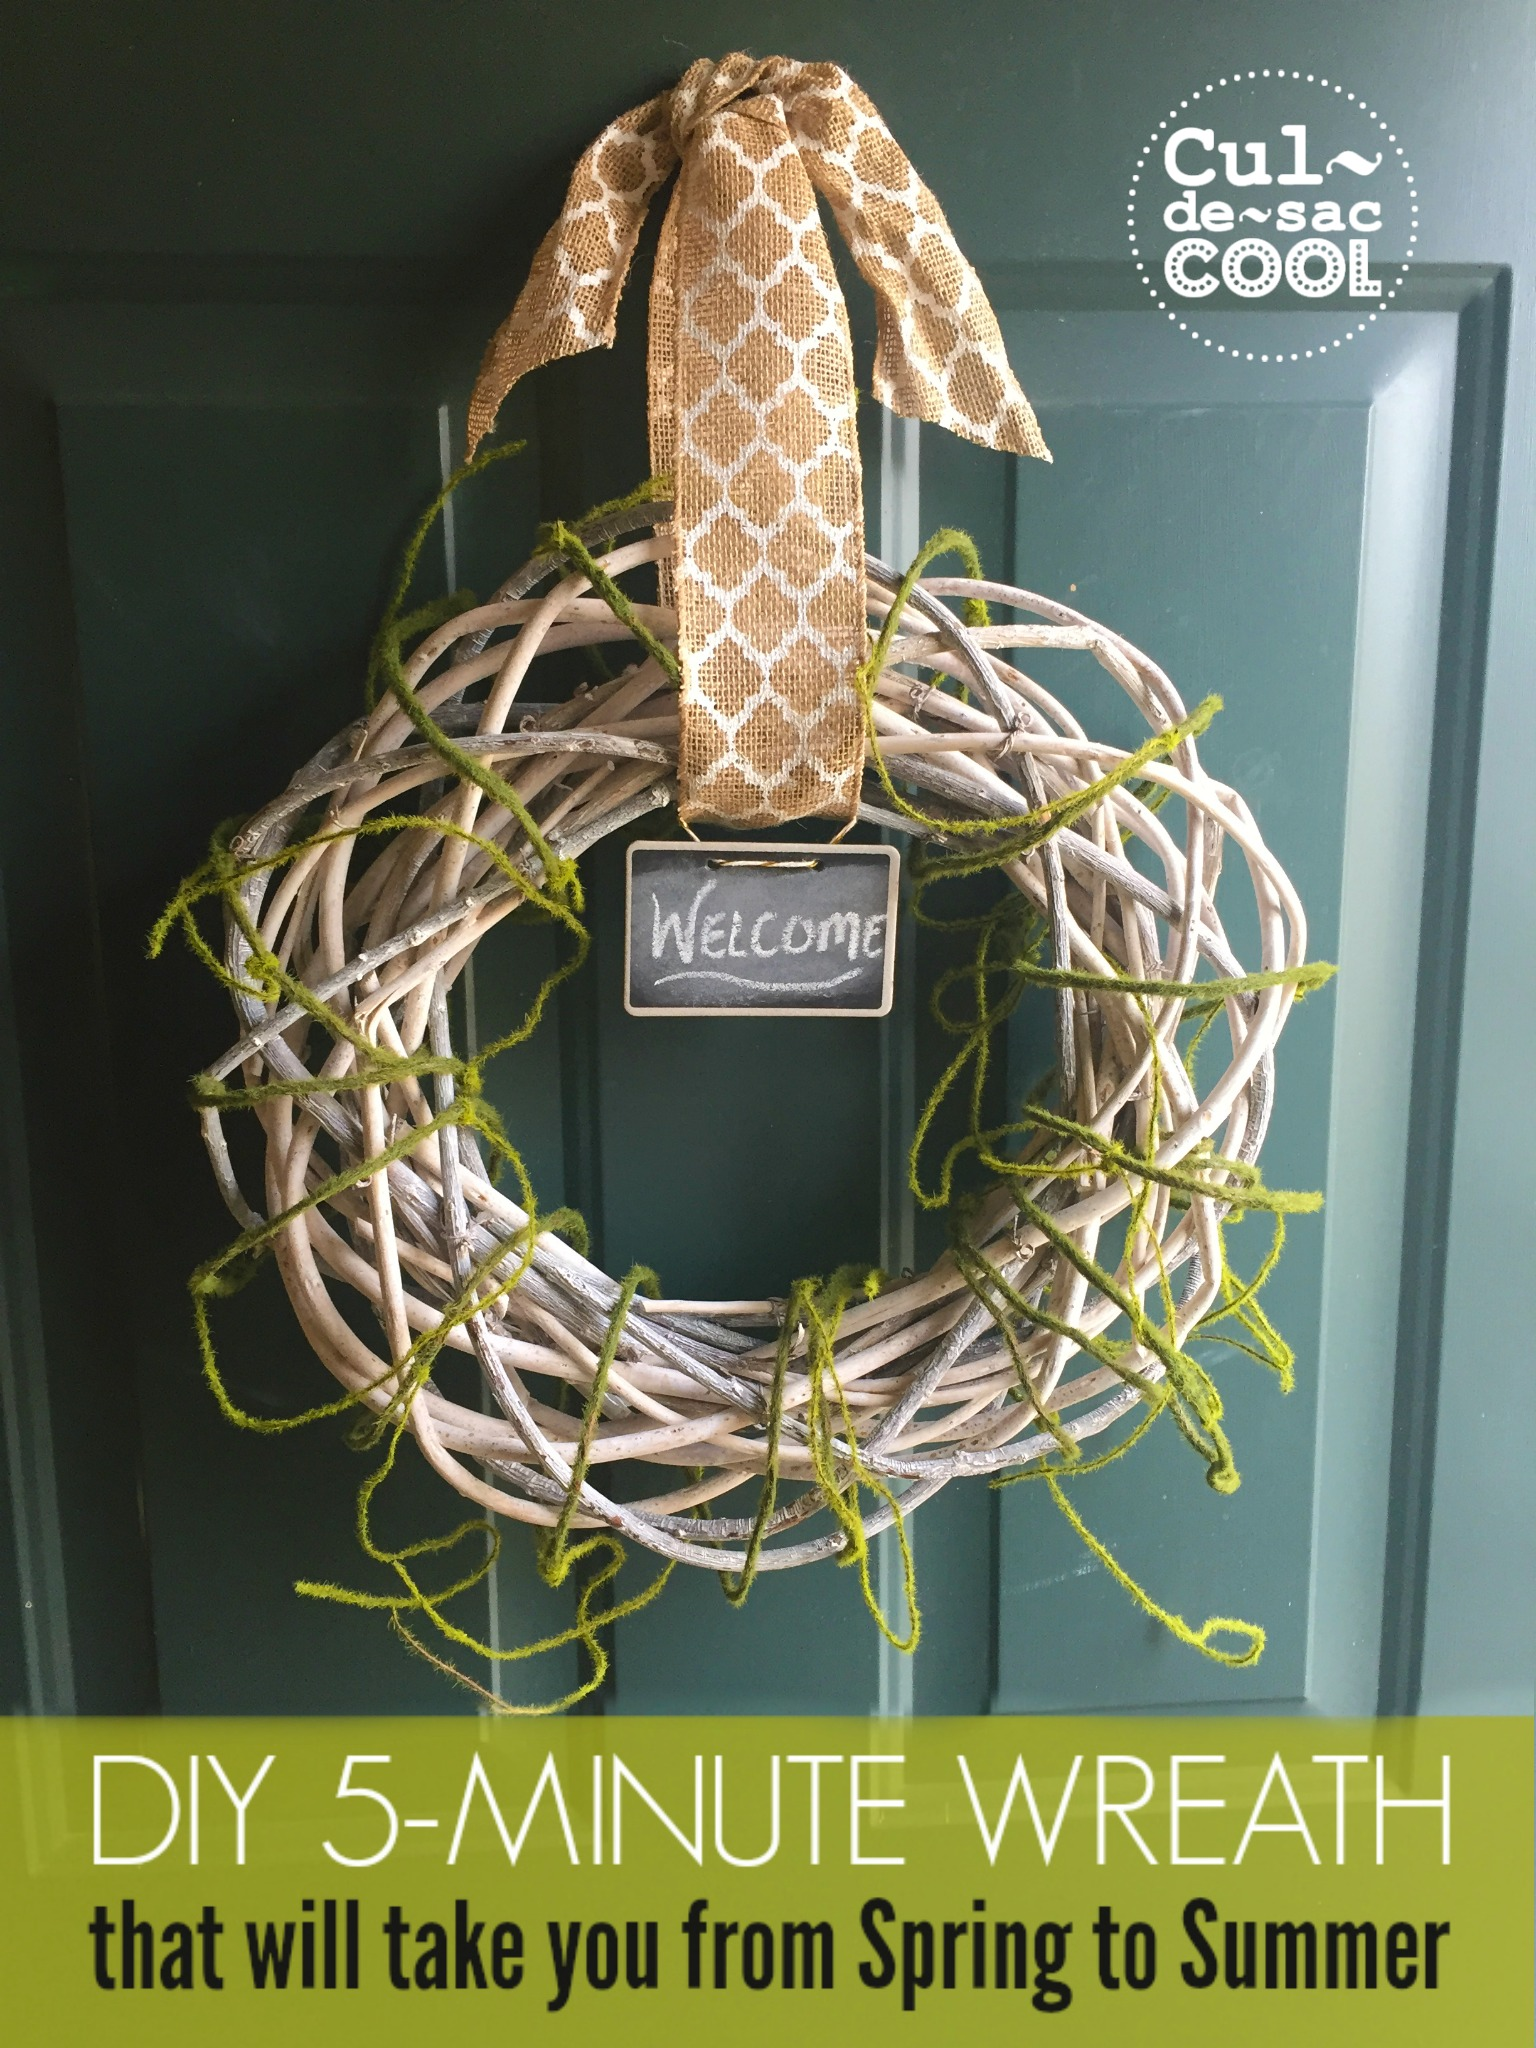 DIY 5-Minute Wreath that will take you from Spring to Summer 11